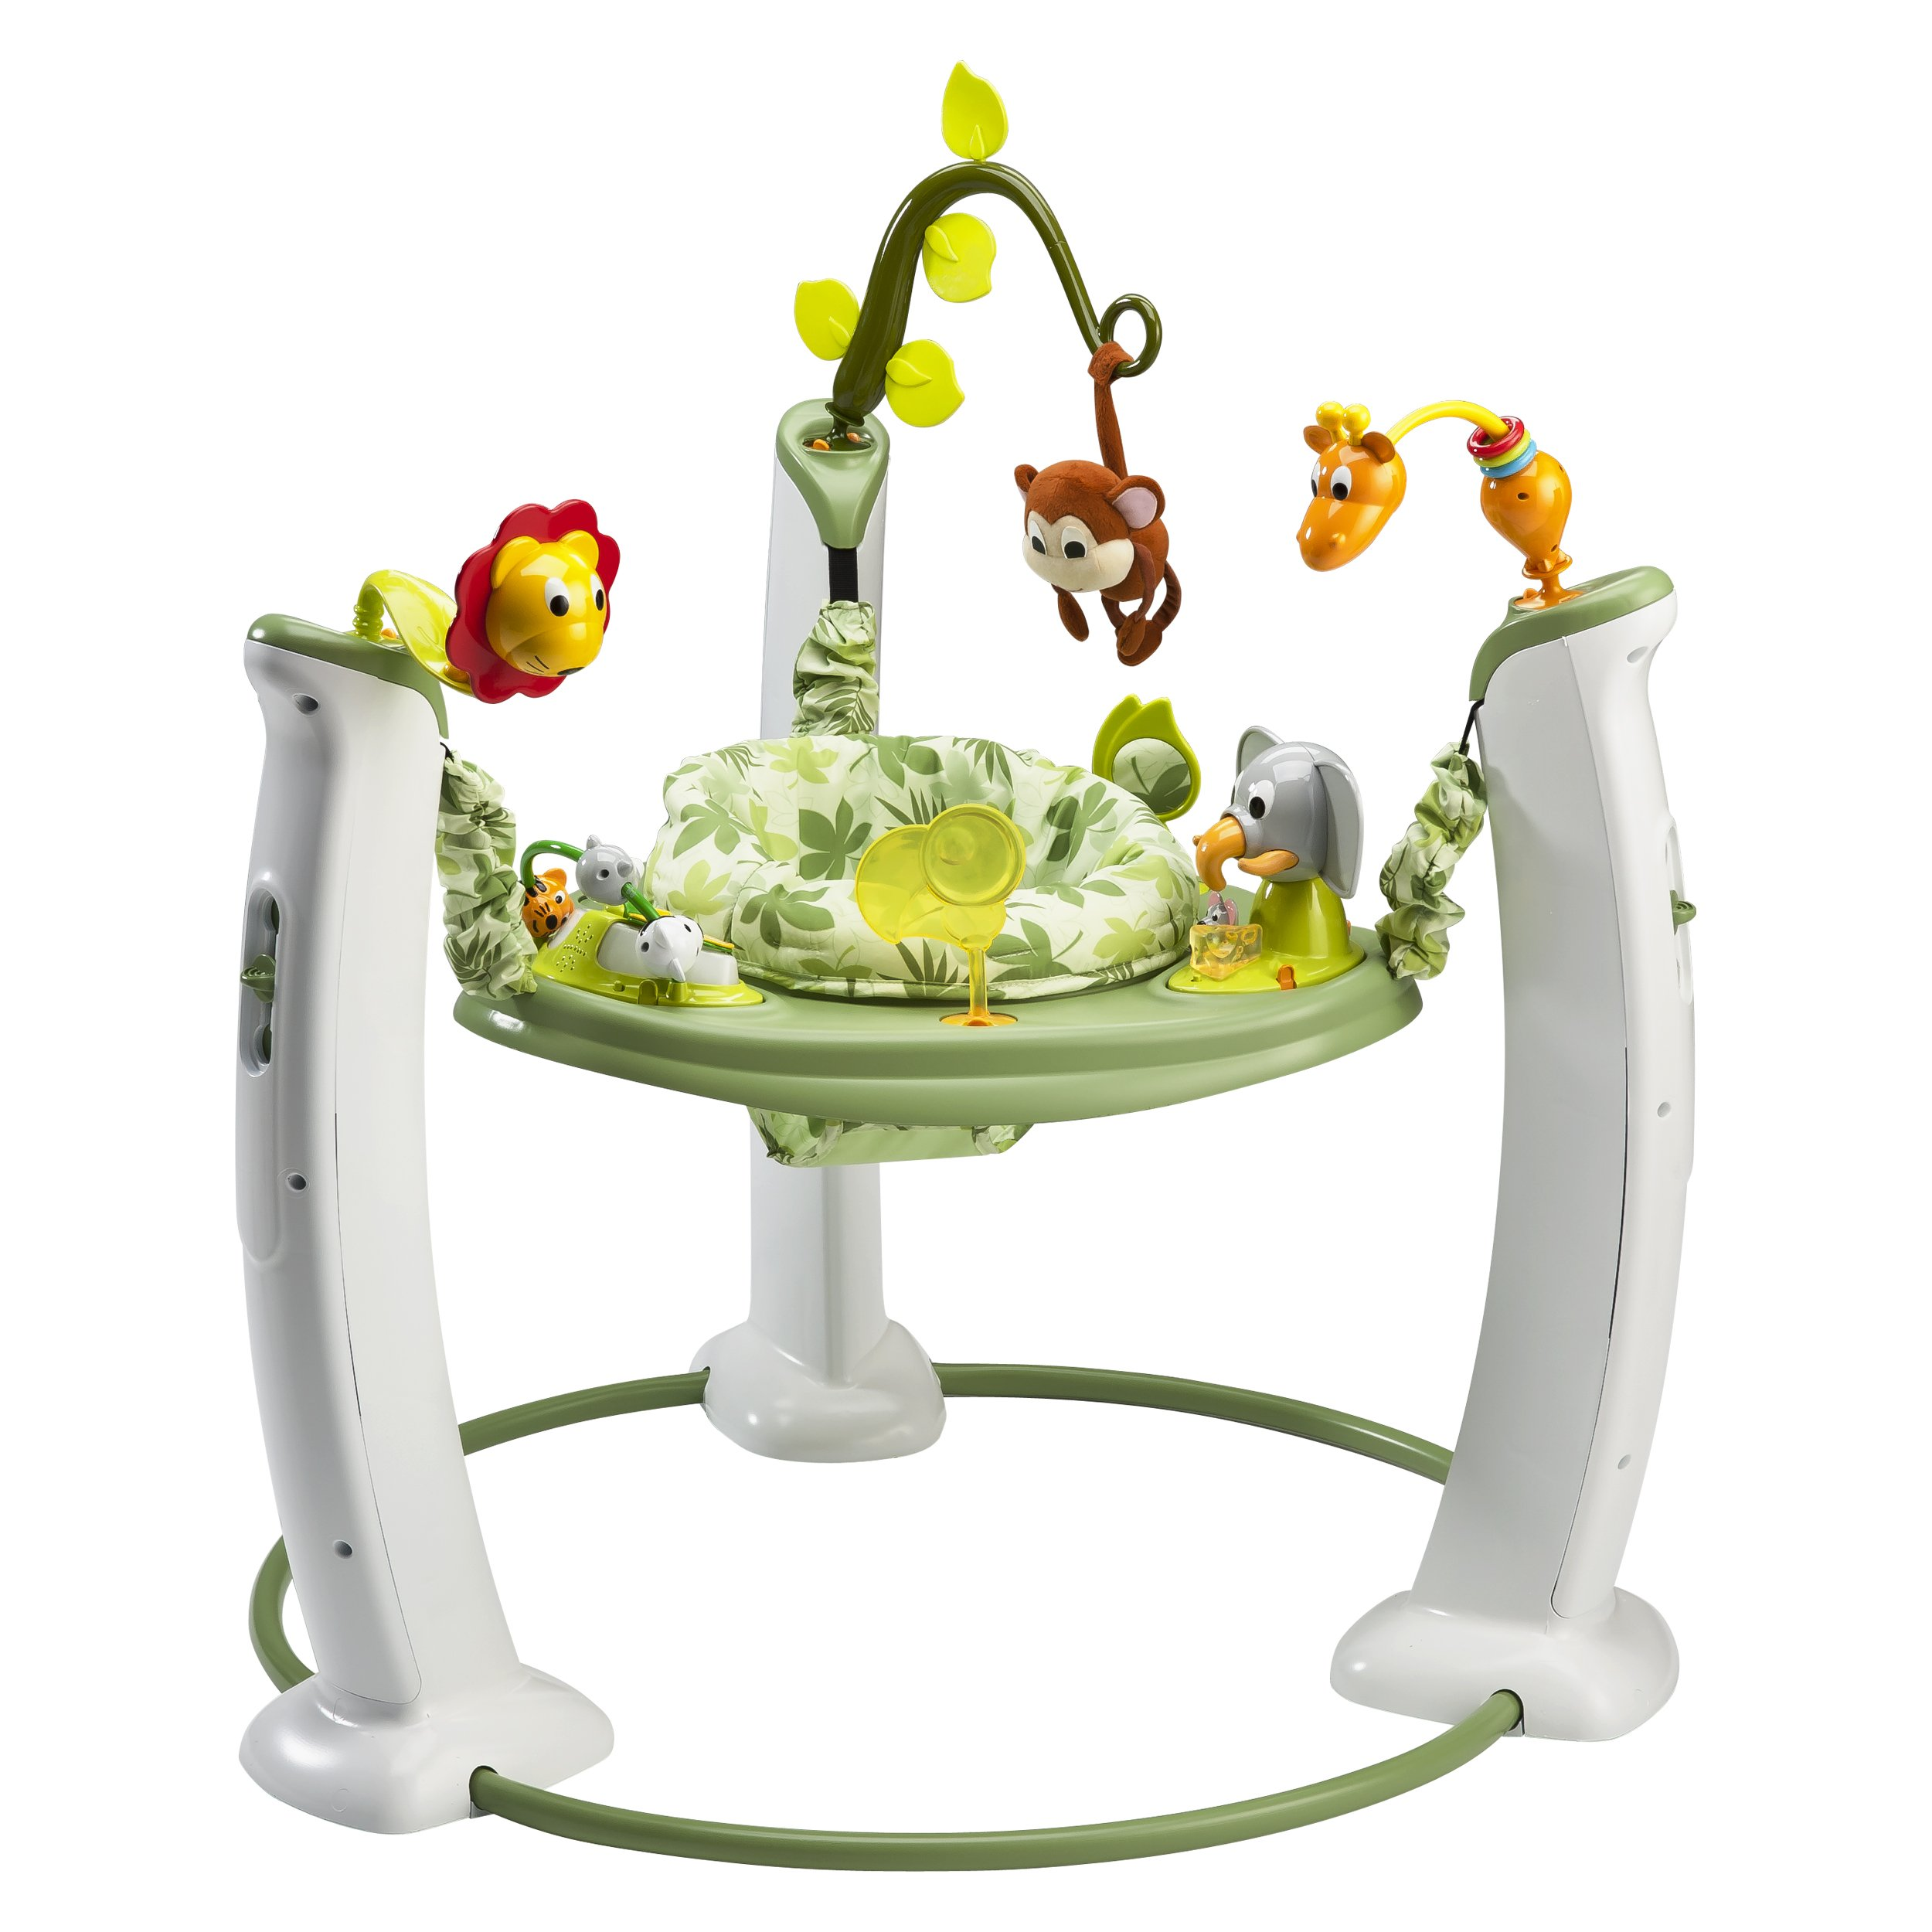 Evenflo ExerSaucer Jump and Learn Activity Centre Safari Friends